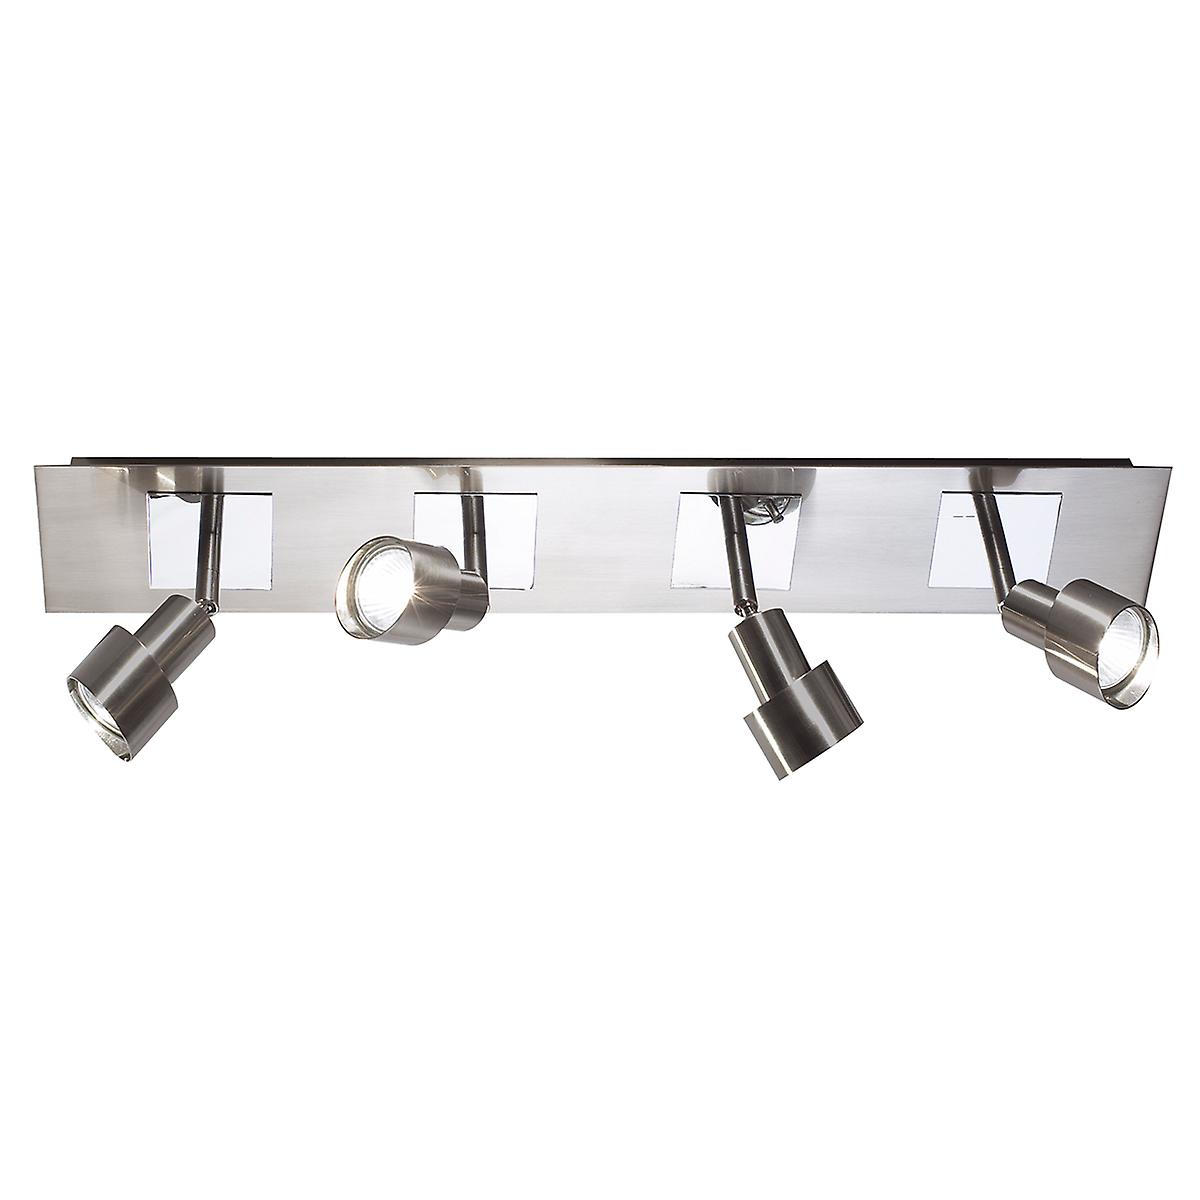 Dar FUT8446 Futura 4 Light Halogen Ceiling/Wall Spotlight Bar